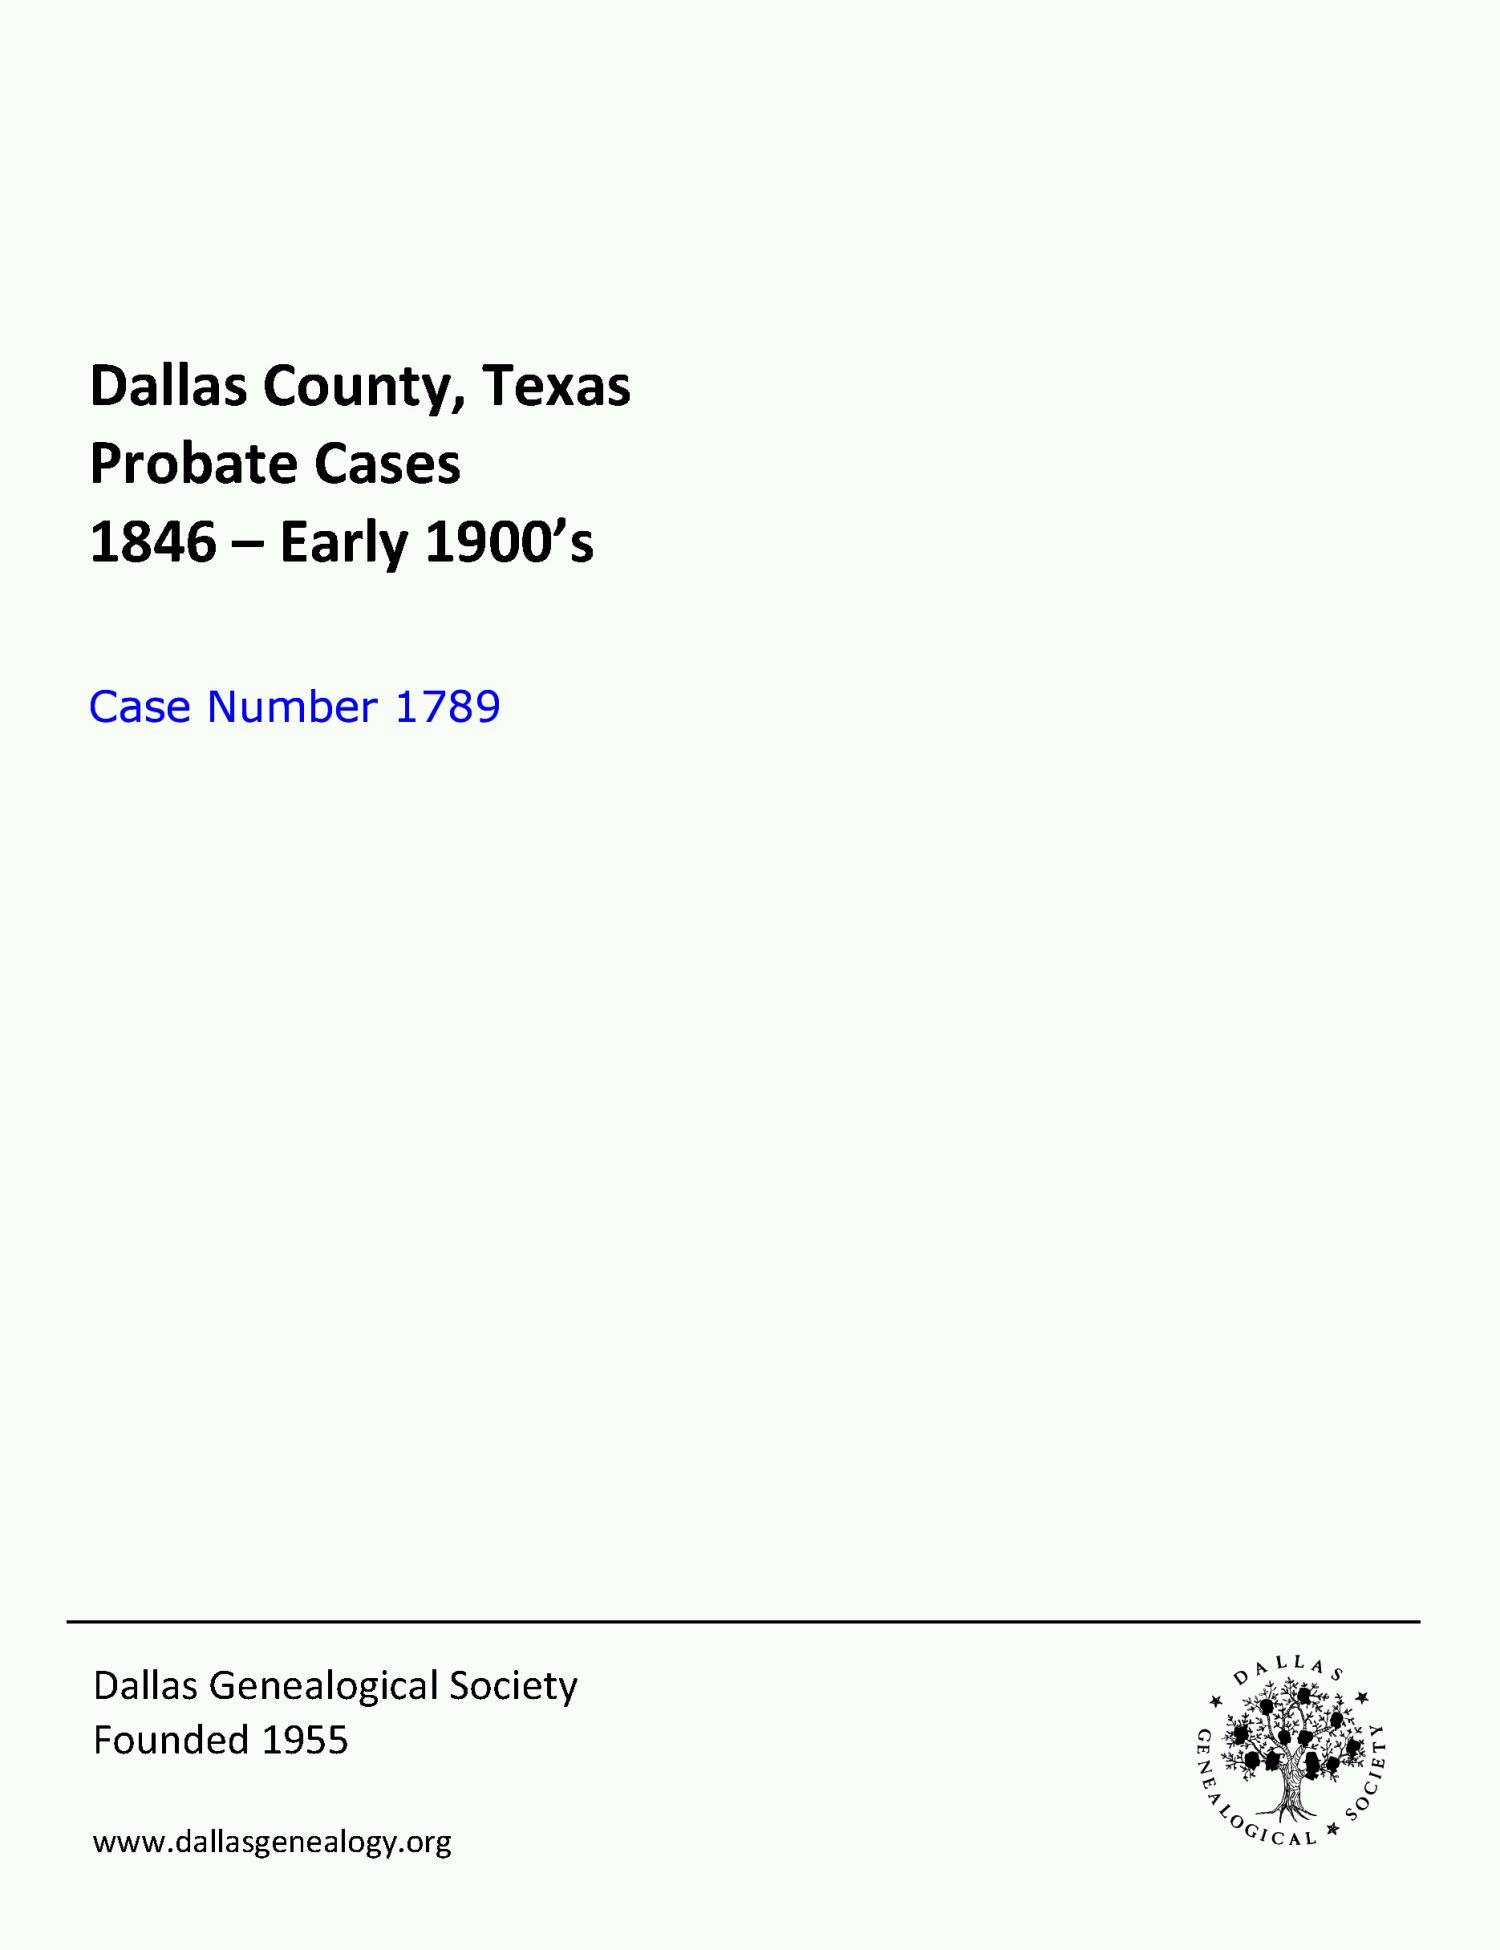 Dallas County Probate Case 1789: Perry, Sarah S. (Deceased)                                                                                                      [Sequence #]: 1 of 16